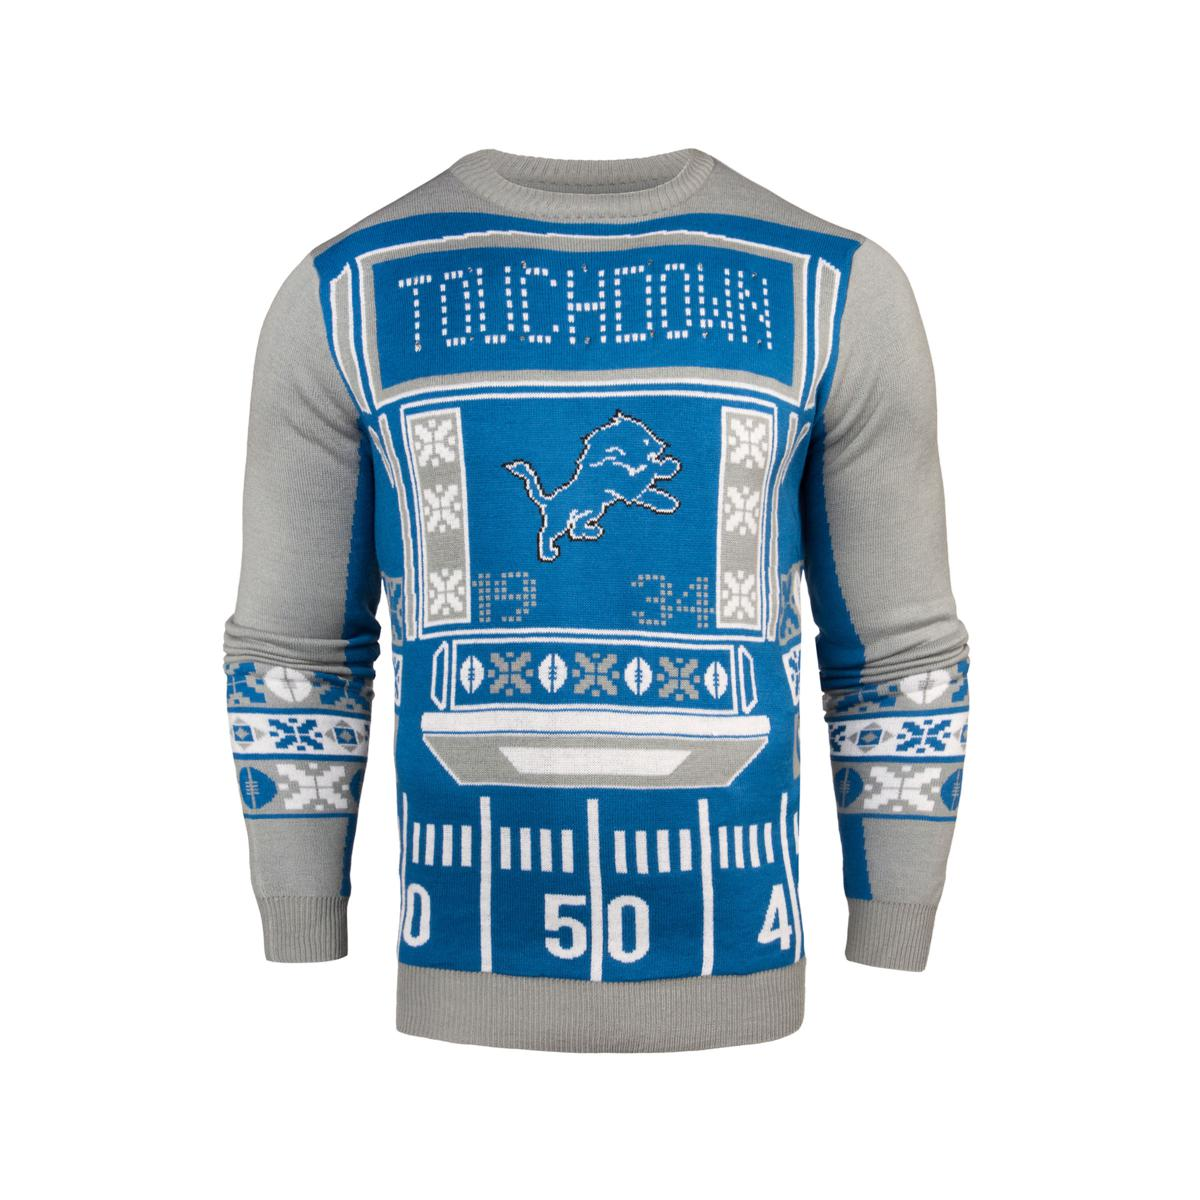 Officially-Licensed-NFL-Light-Up-LED-Ugly-Sweater-by-Forever-Collectibles-492164